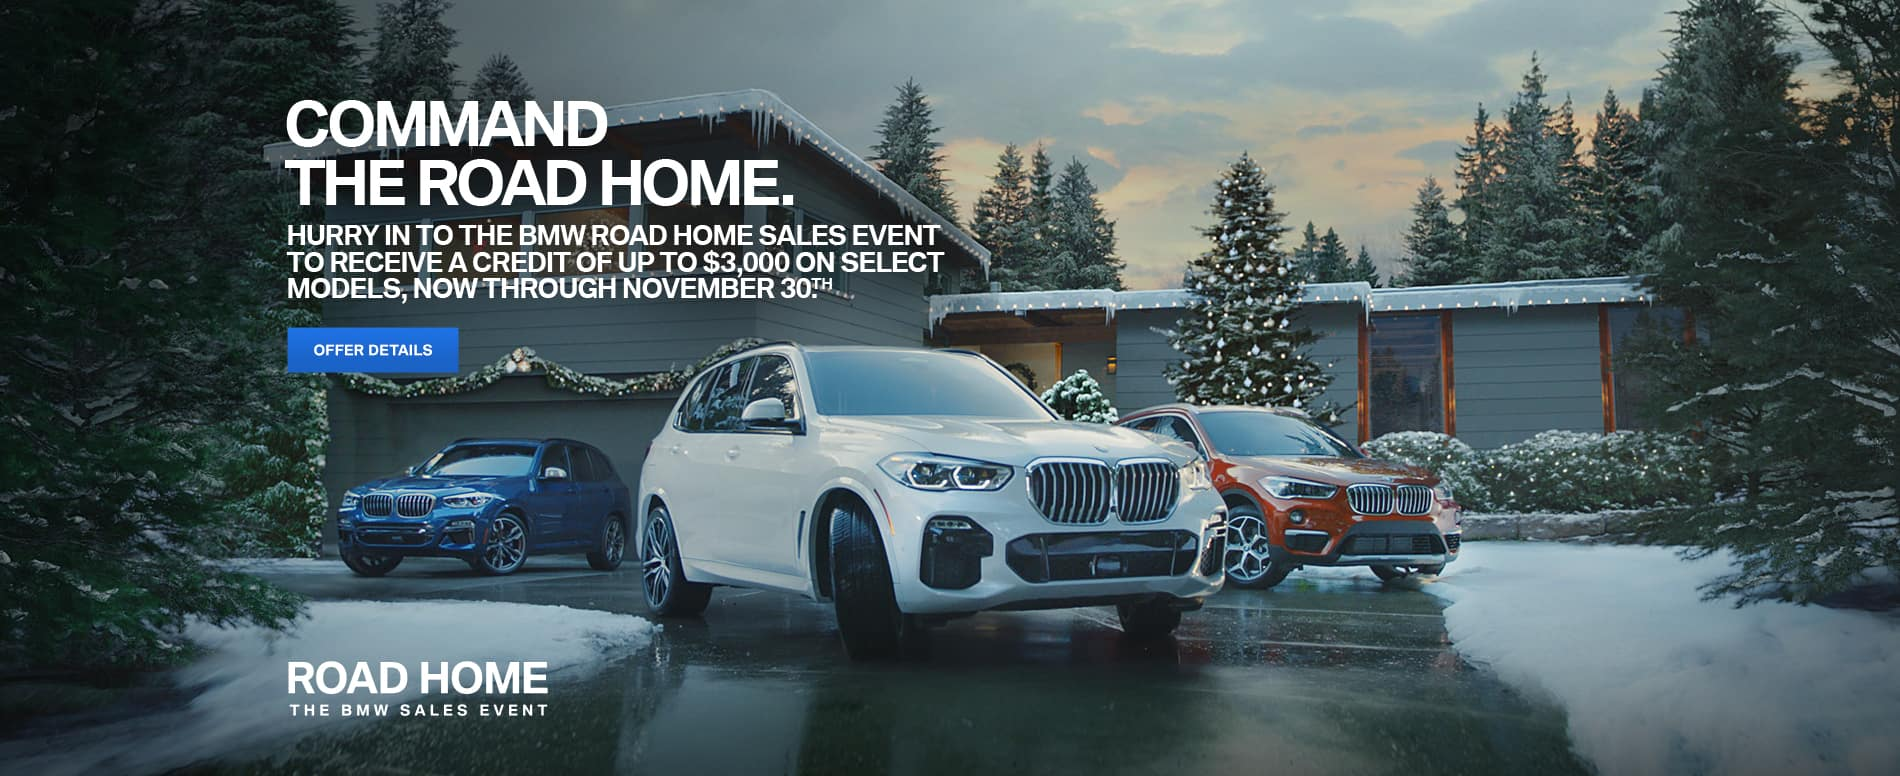 2018 BMW Road Home